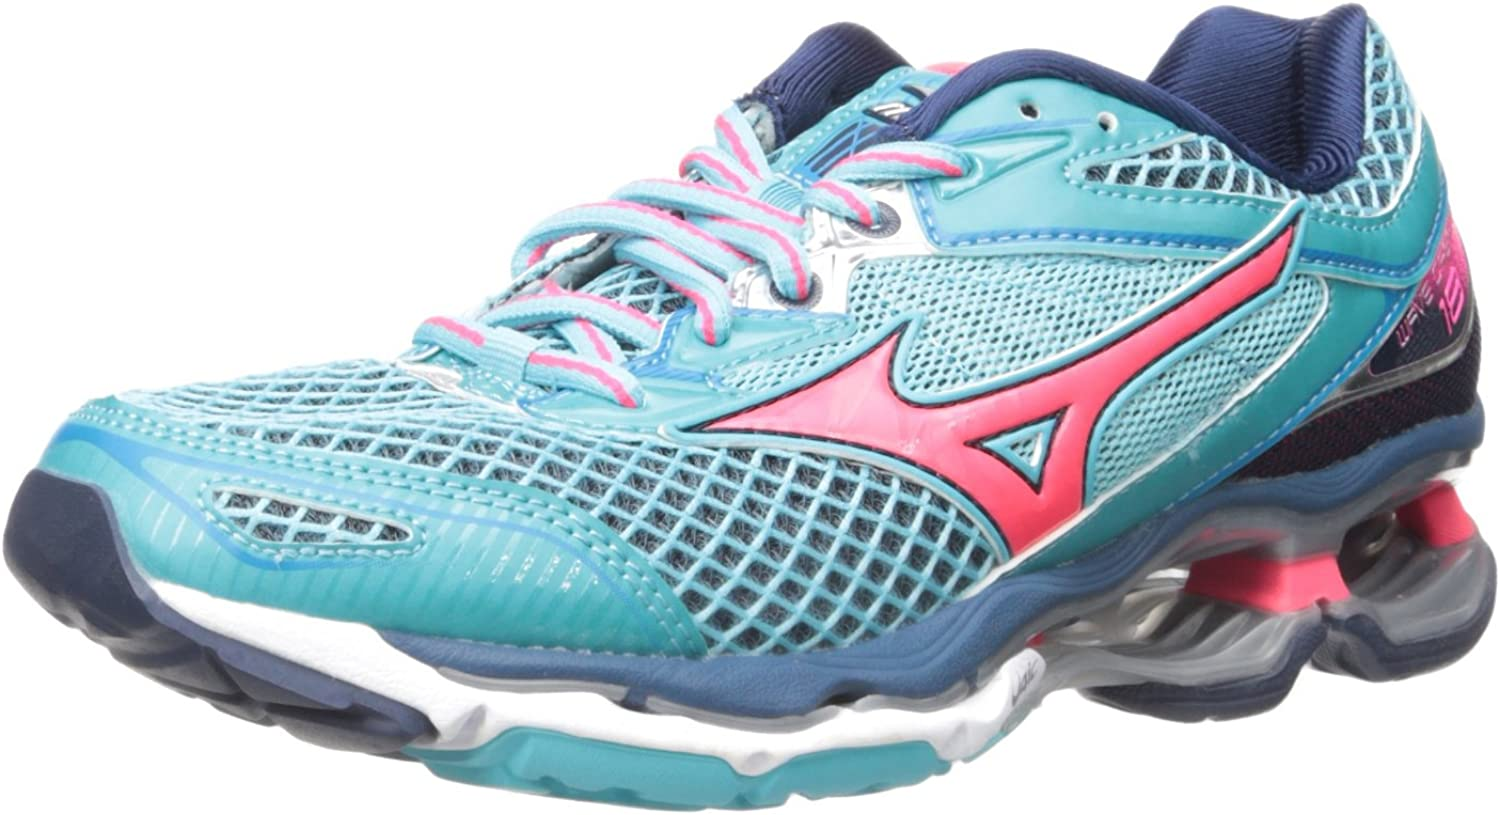 Mizuno Women's Wave Creation 18 Running shoes